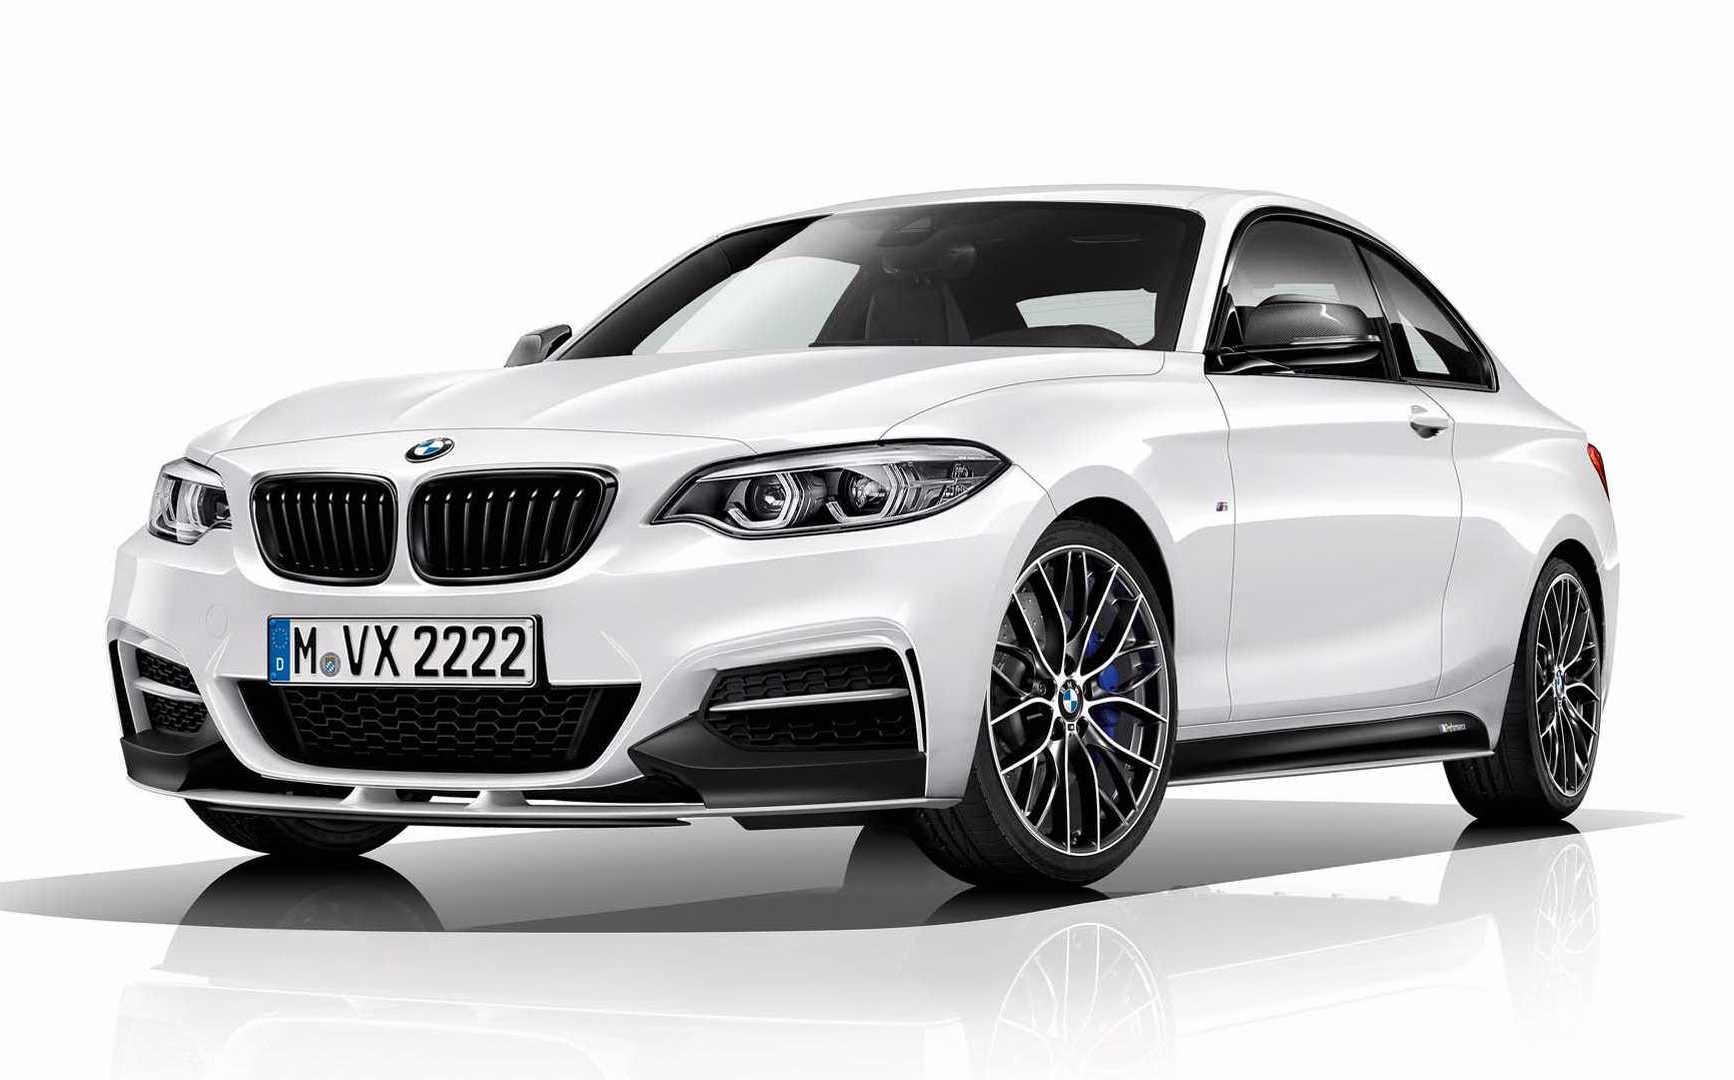 BMW introduces the M240i M Performance Edition, limited to 750 units